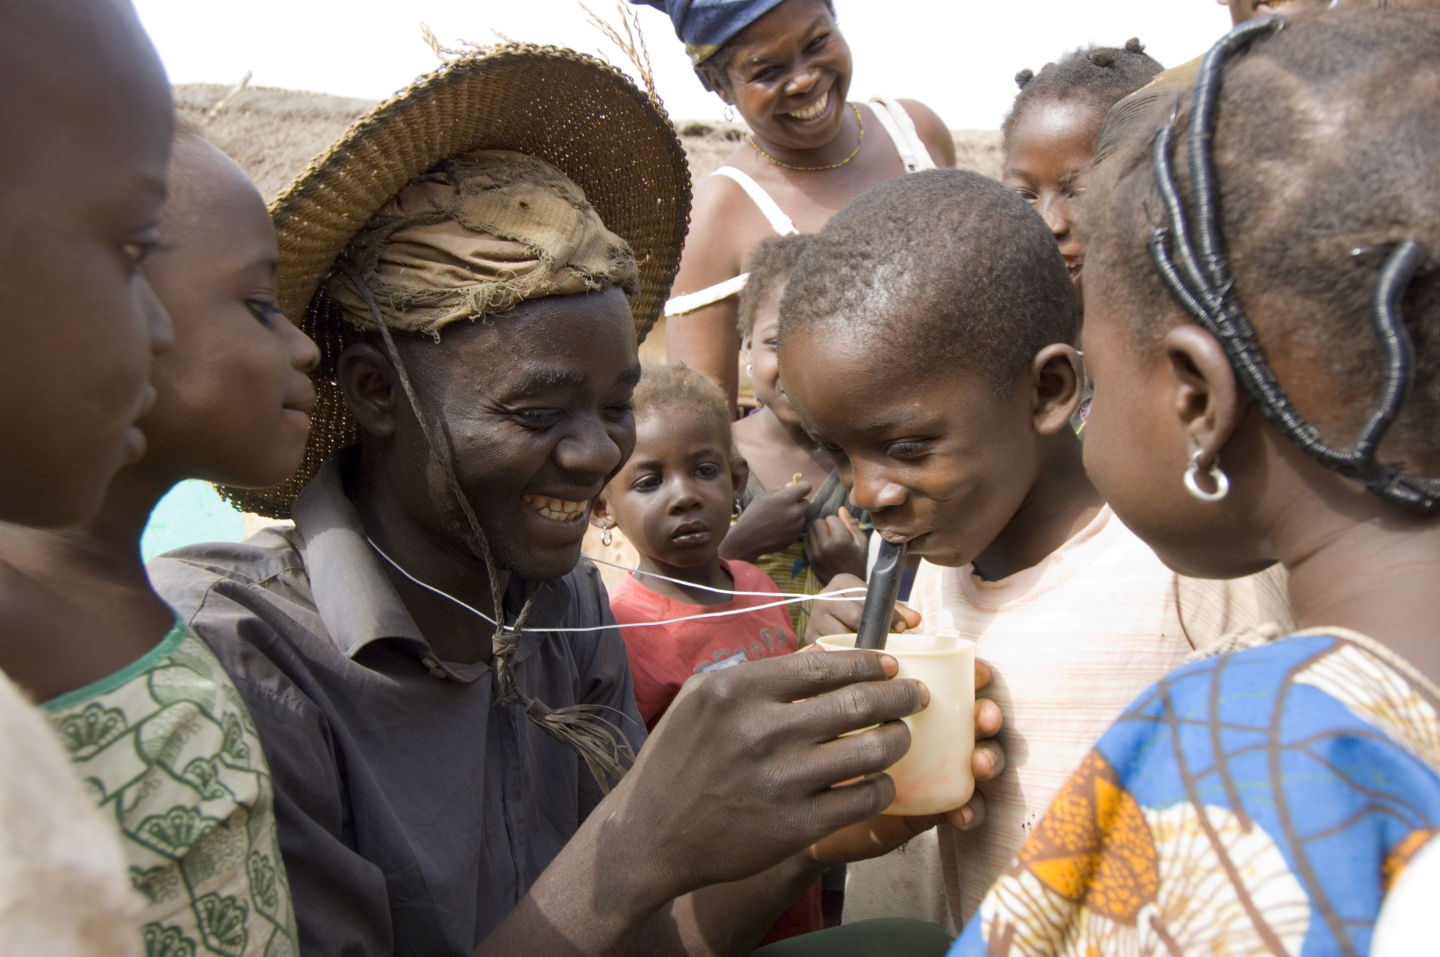 Farmer and bicycle fitter Nuru Ziblim teaches children how to filter their water with a special drinking device, when visiting the farms, so as to not ingest the guinea worm larvae. (Photo by Louise Gubb/Corbis via Getty Images)